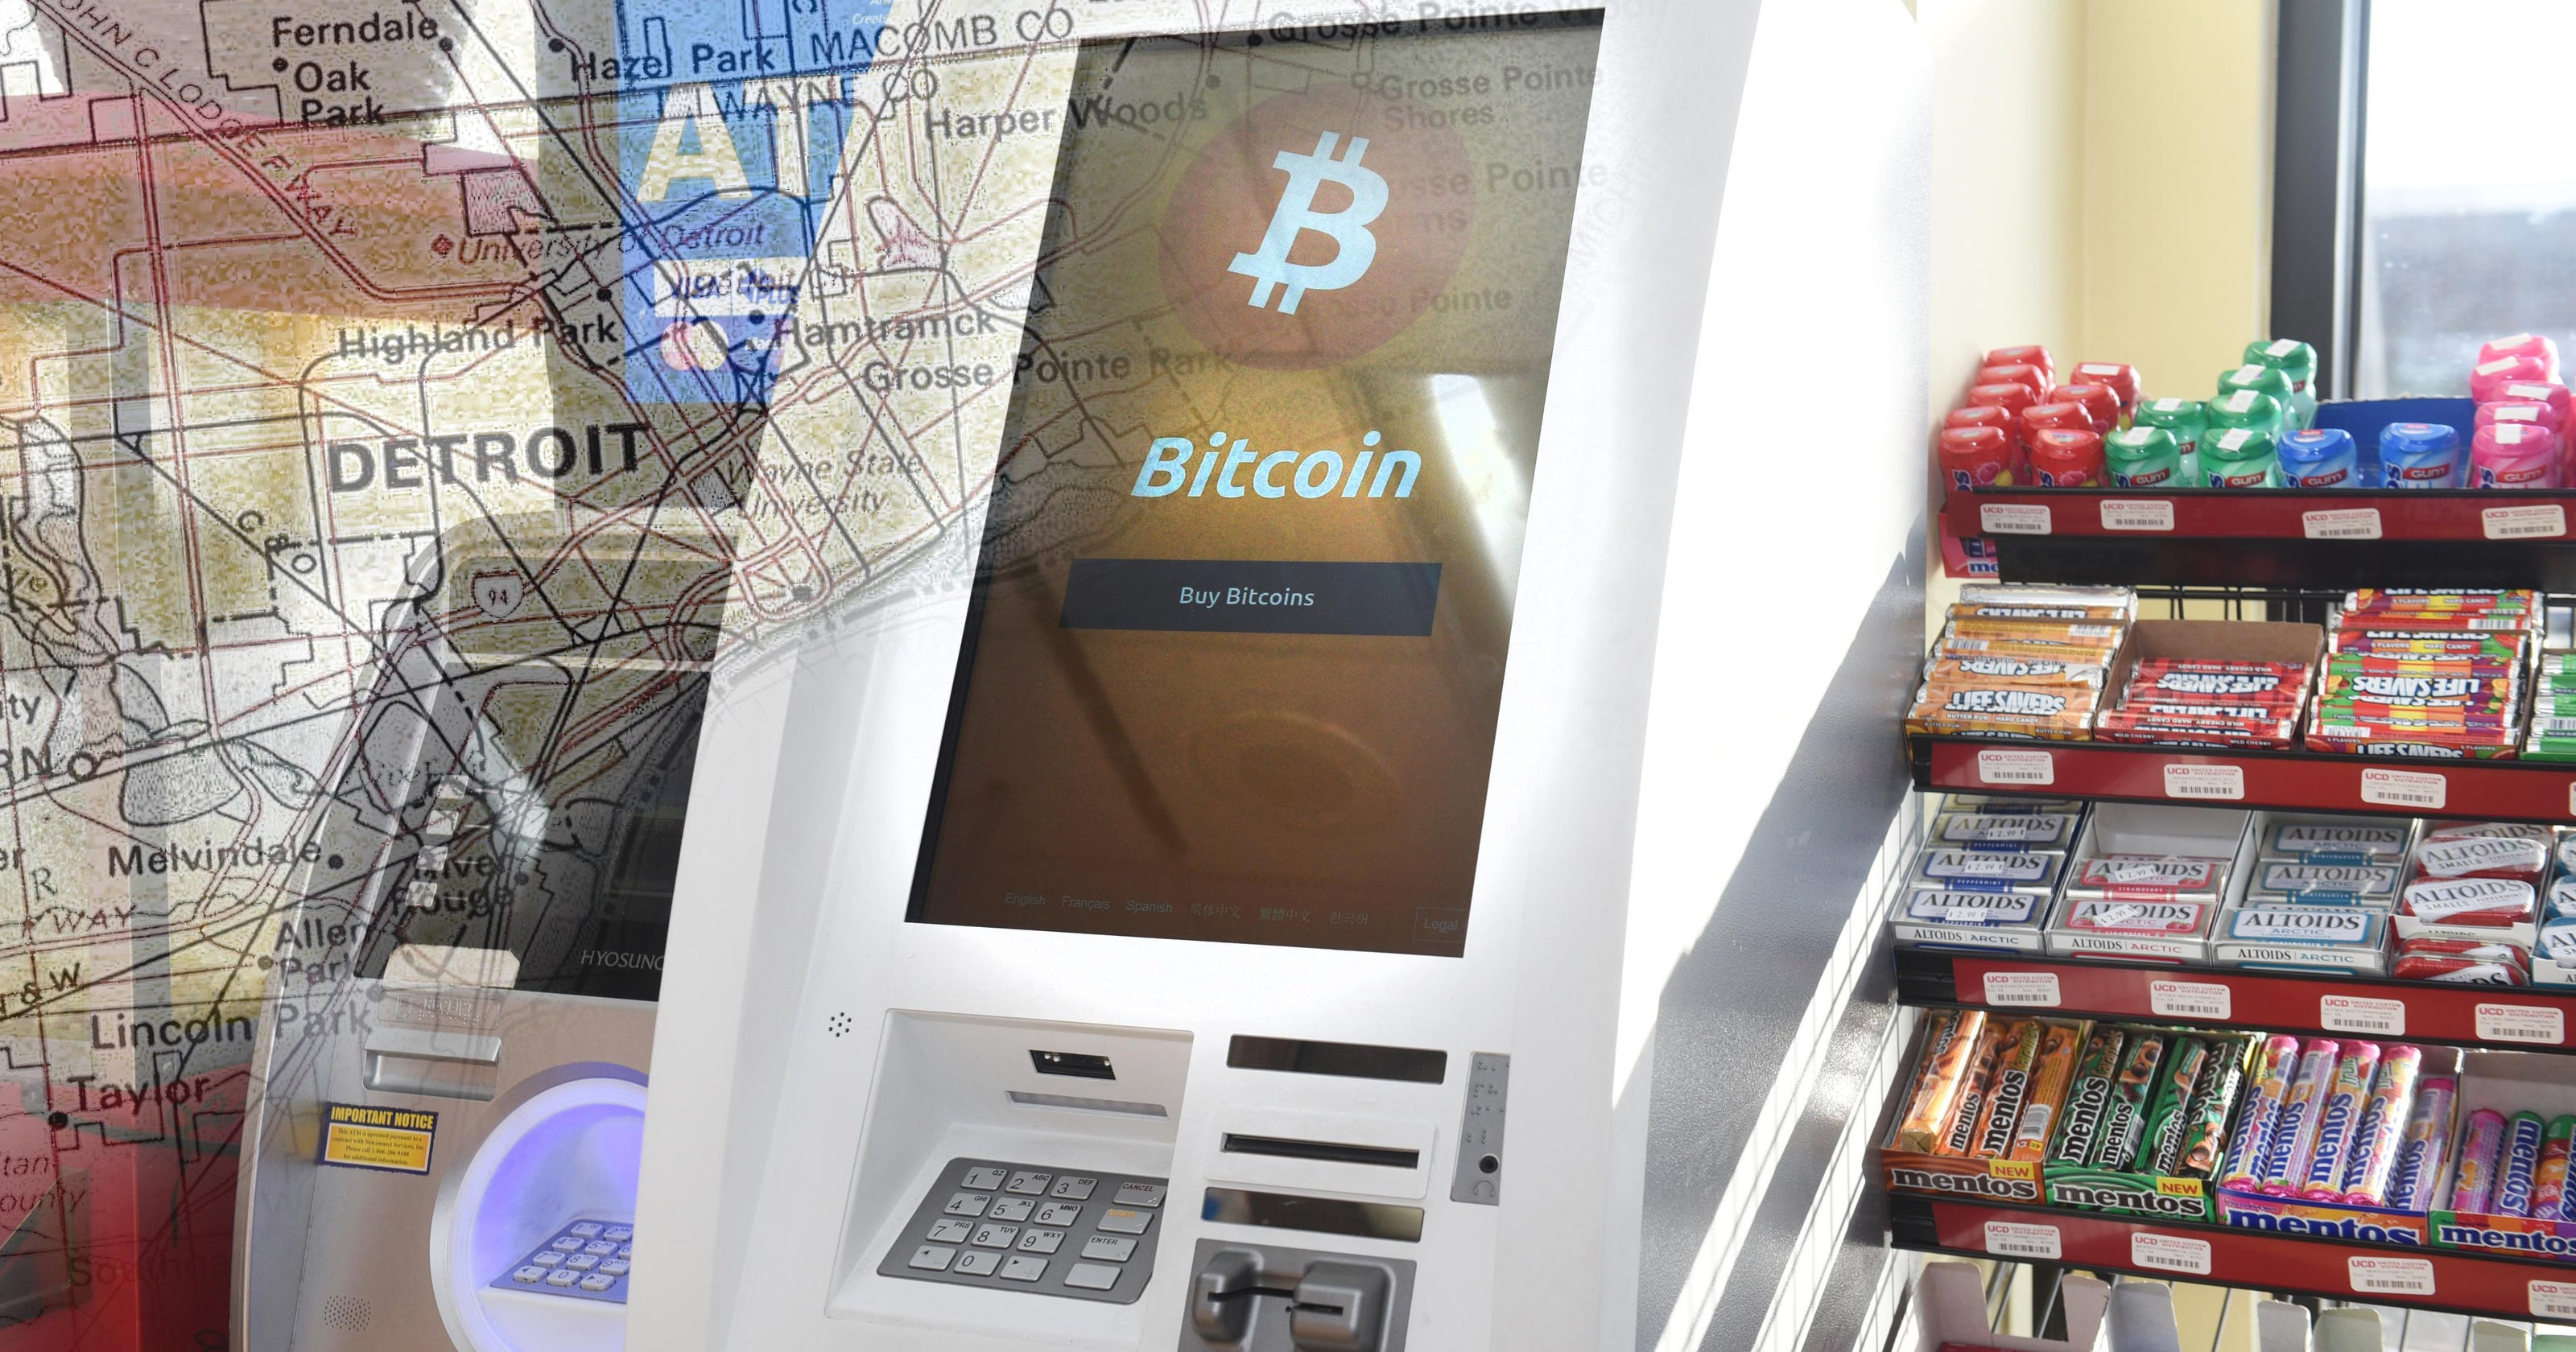 Bitcoin Atms In Detroit Party S Gas Stations